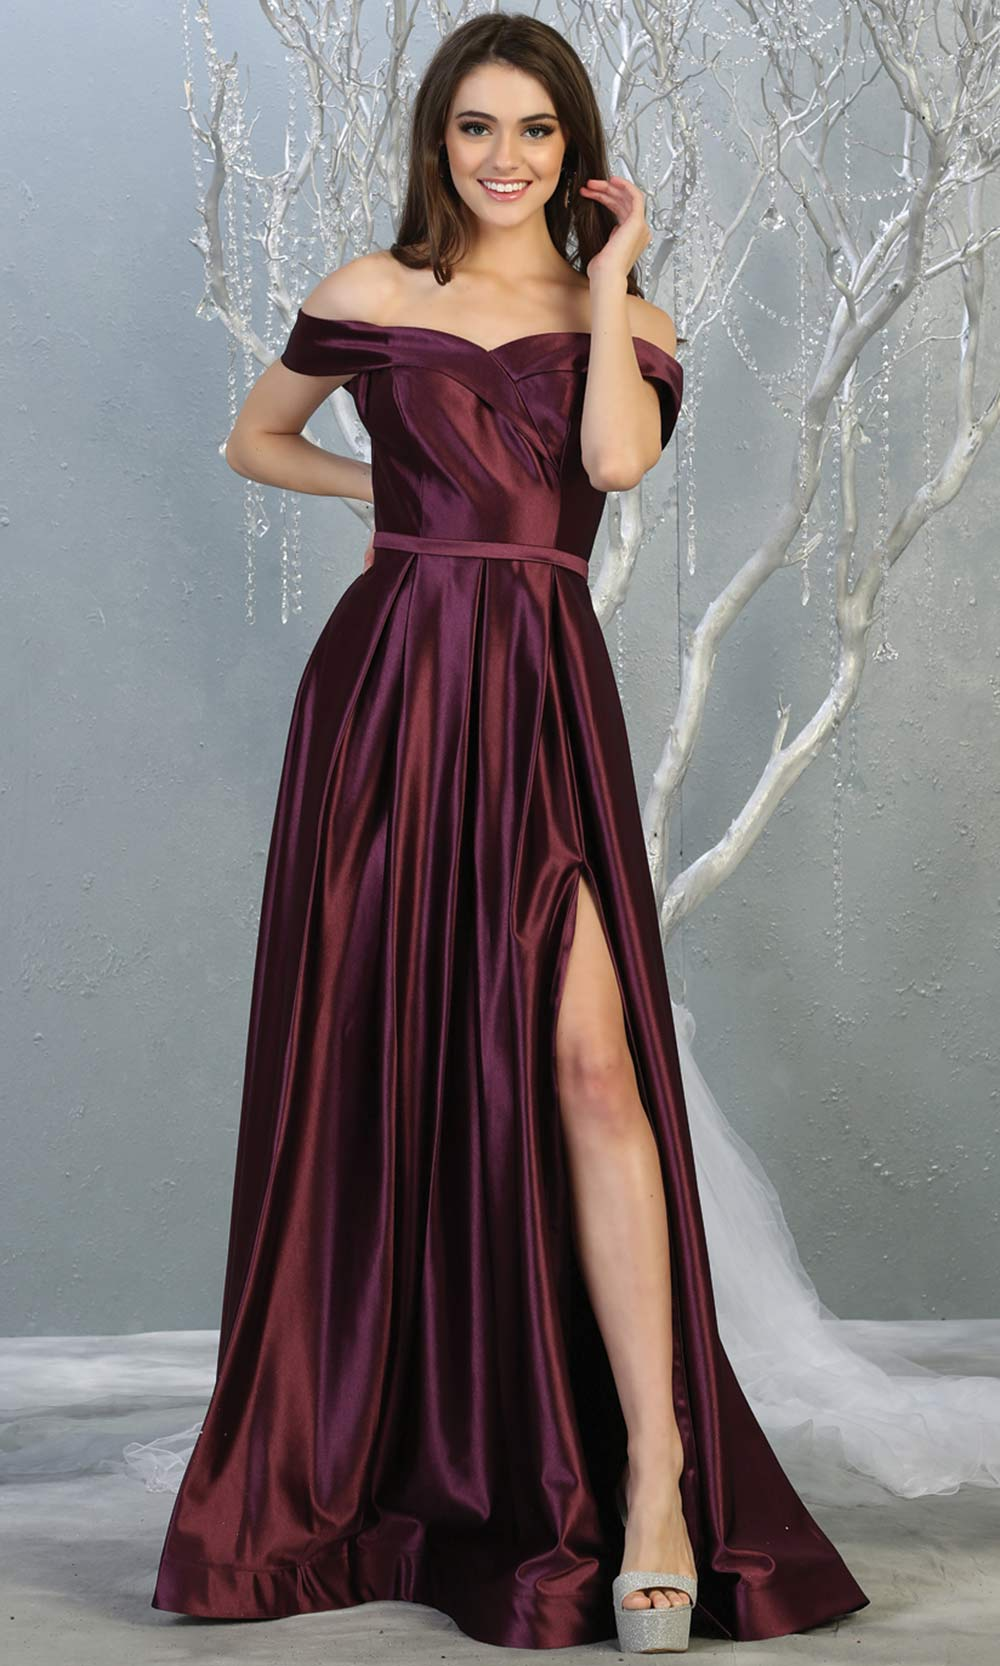 Mayqueen MQ 1781 long eggplantt off shoulder evening flowy dress w/ high slit.Full length dark purple satin gown is perfect for  enagagement/e-shoot dress, formal wedding guest, indowestern gown, evening party dress, prom, bridesmaid. Plus sizes avail.jpg